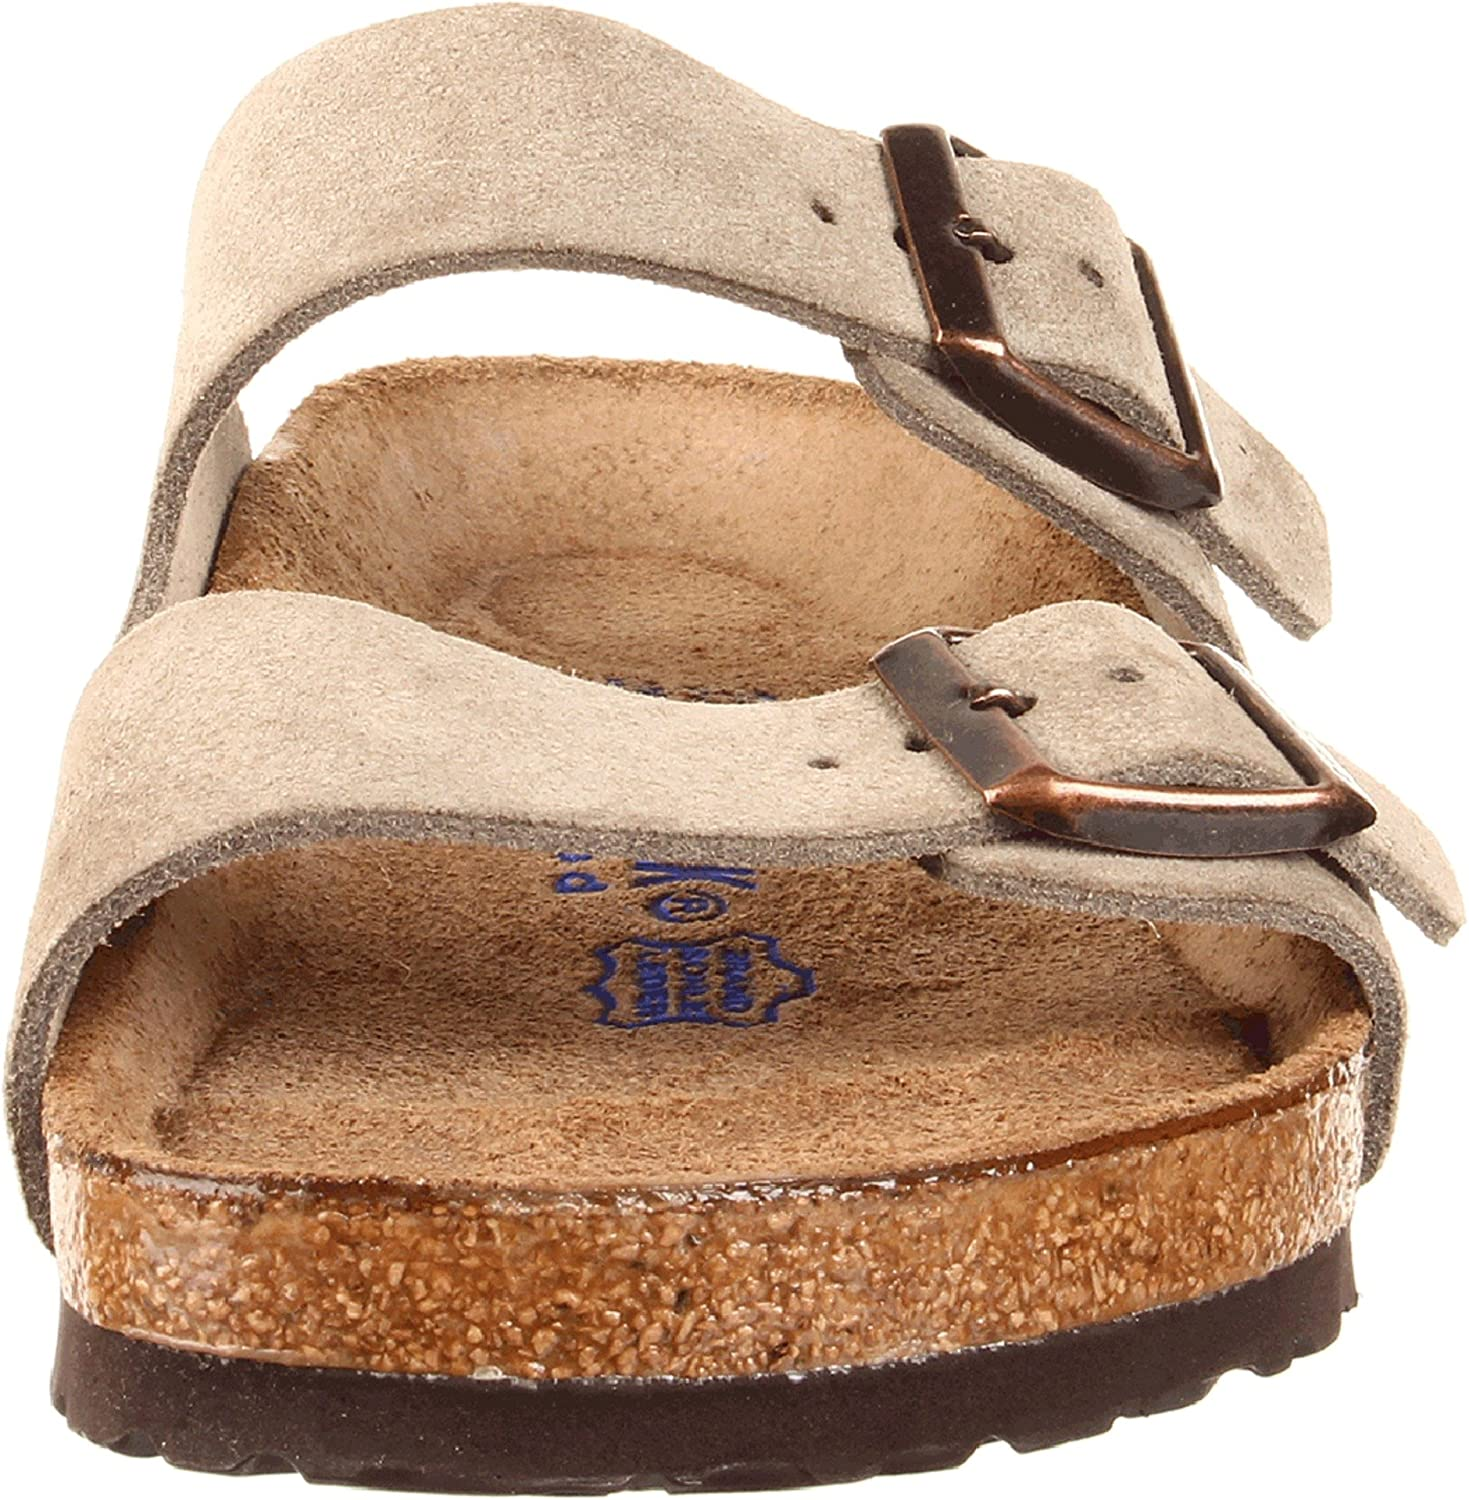 ebbc7d313cc65 ... Birkenstock Arizona Soft Footbed Leather EU 8-8.5 Sandal B000W0ET96 39 N  EU  ...